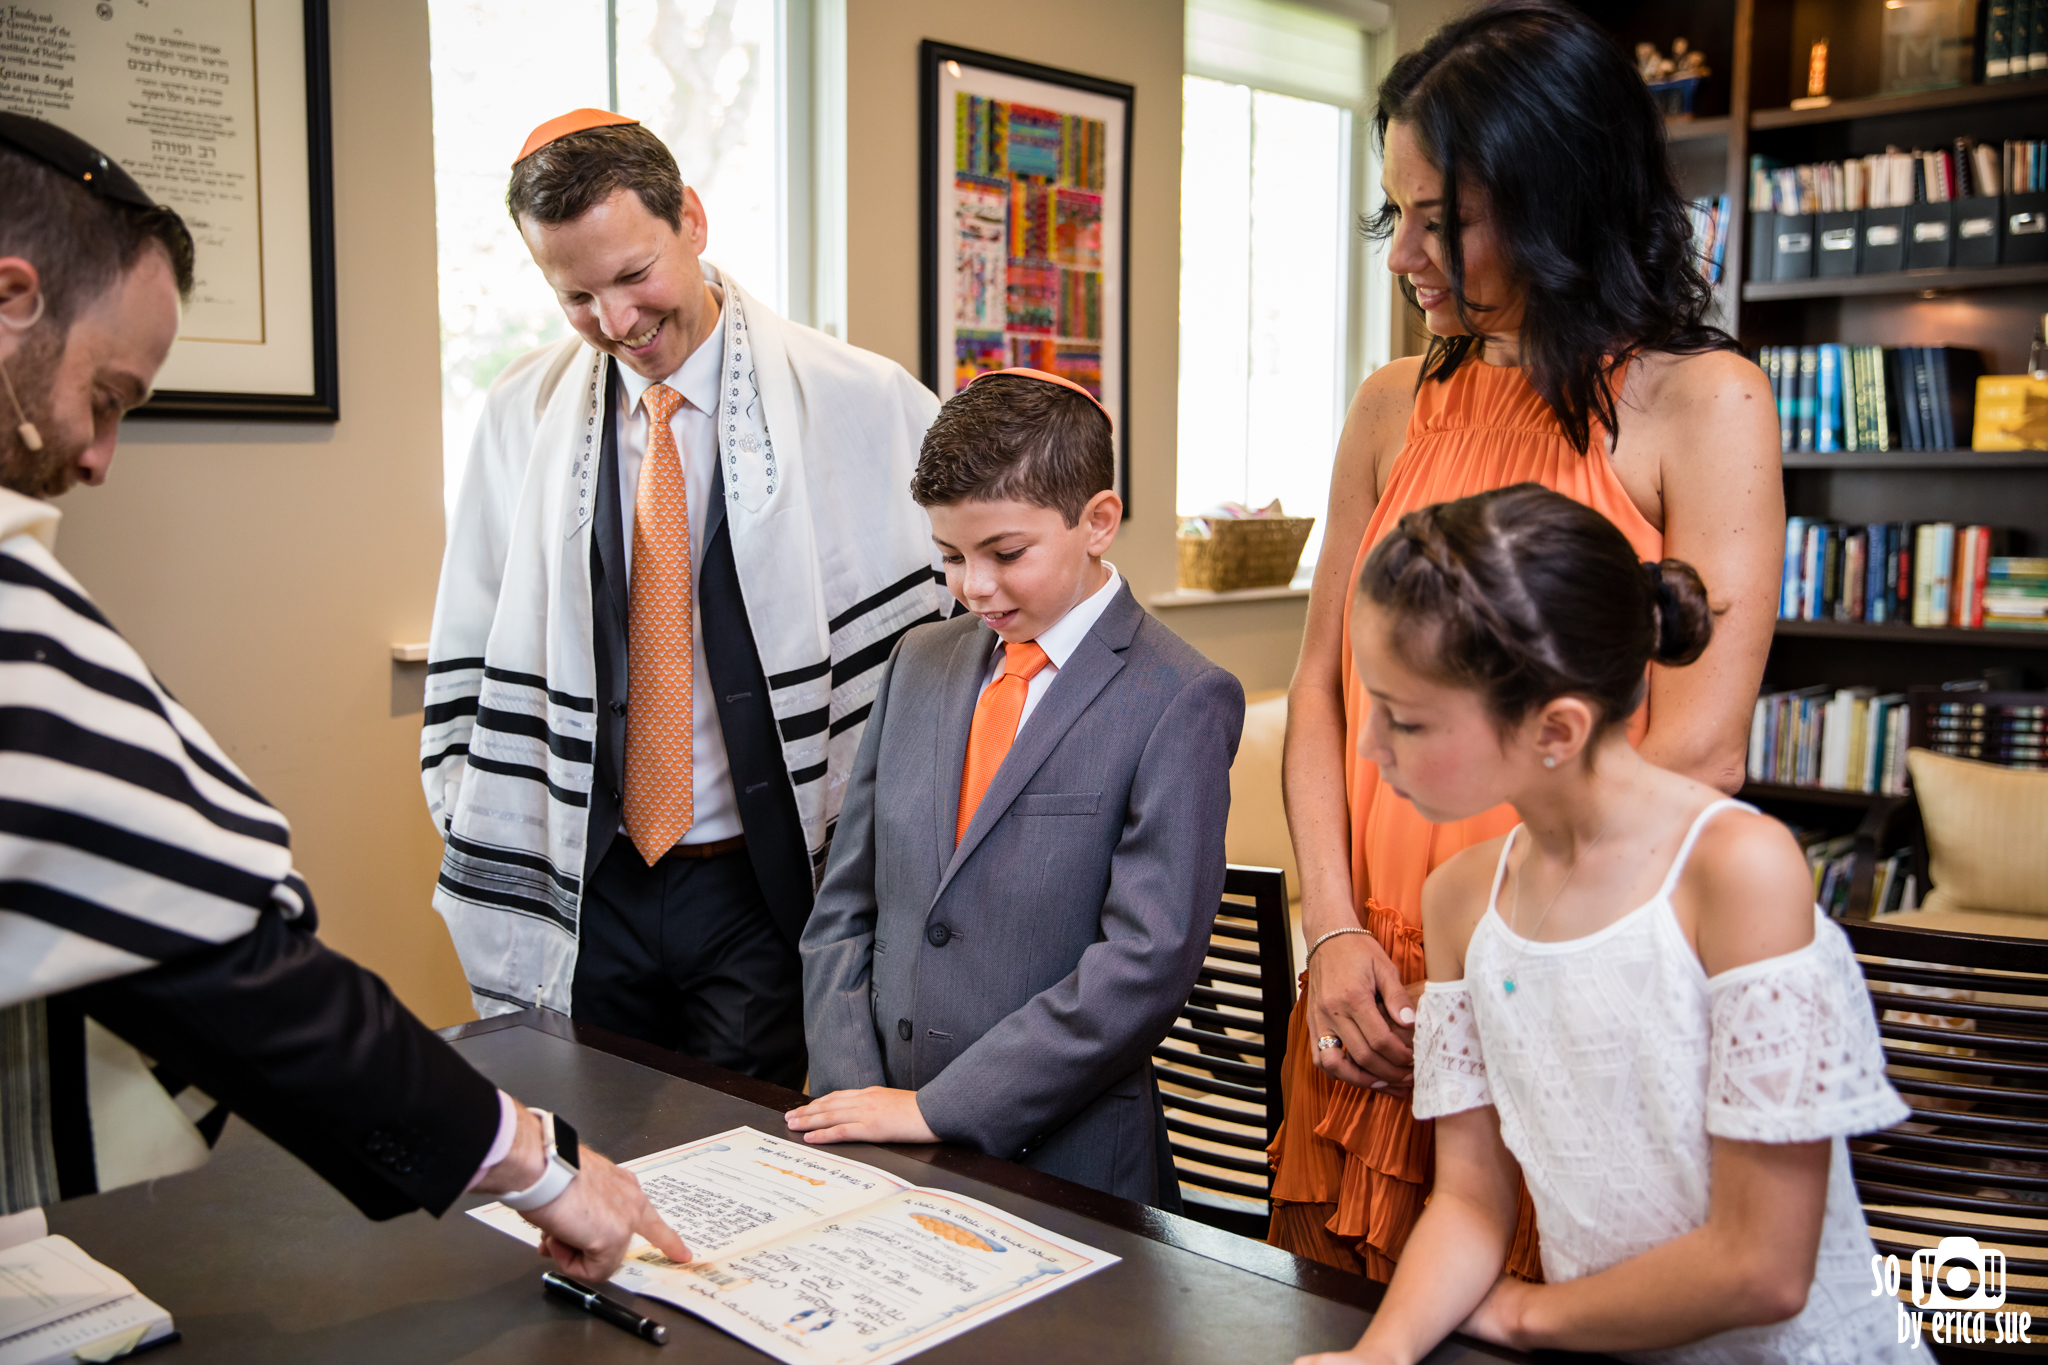 so-you-by-erica-sue-mitzvah-photographer-temple-judea-coral-gables-university-of-miami-hillel-1581.jpg